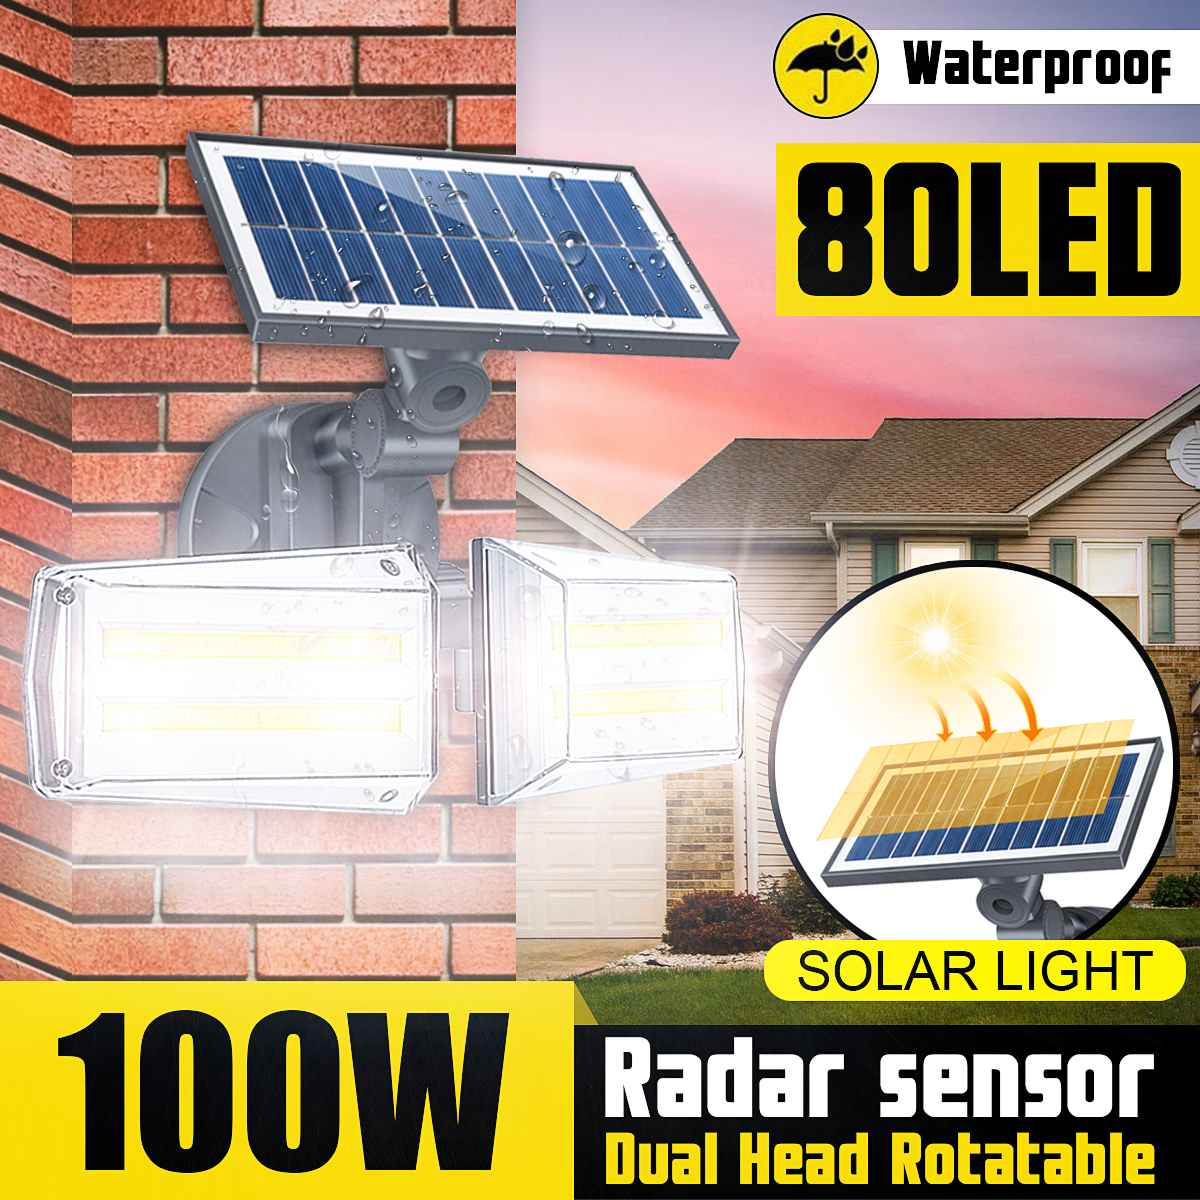 80LED Dual Head Solar wall Light Radar Sensor COB wall lamp Spotlight Outdoors Solar Garden Light Yard 100W LED Lamp Waterproof